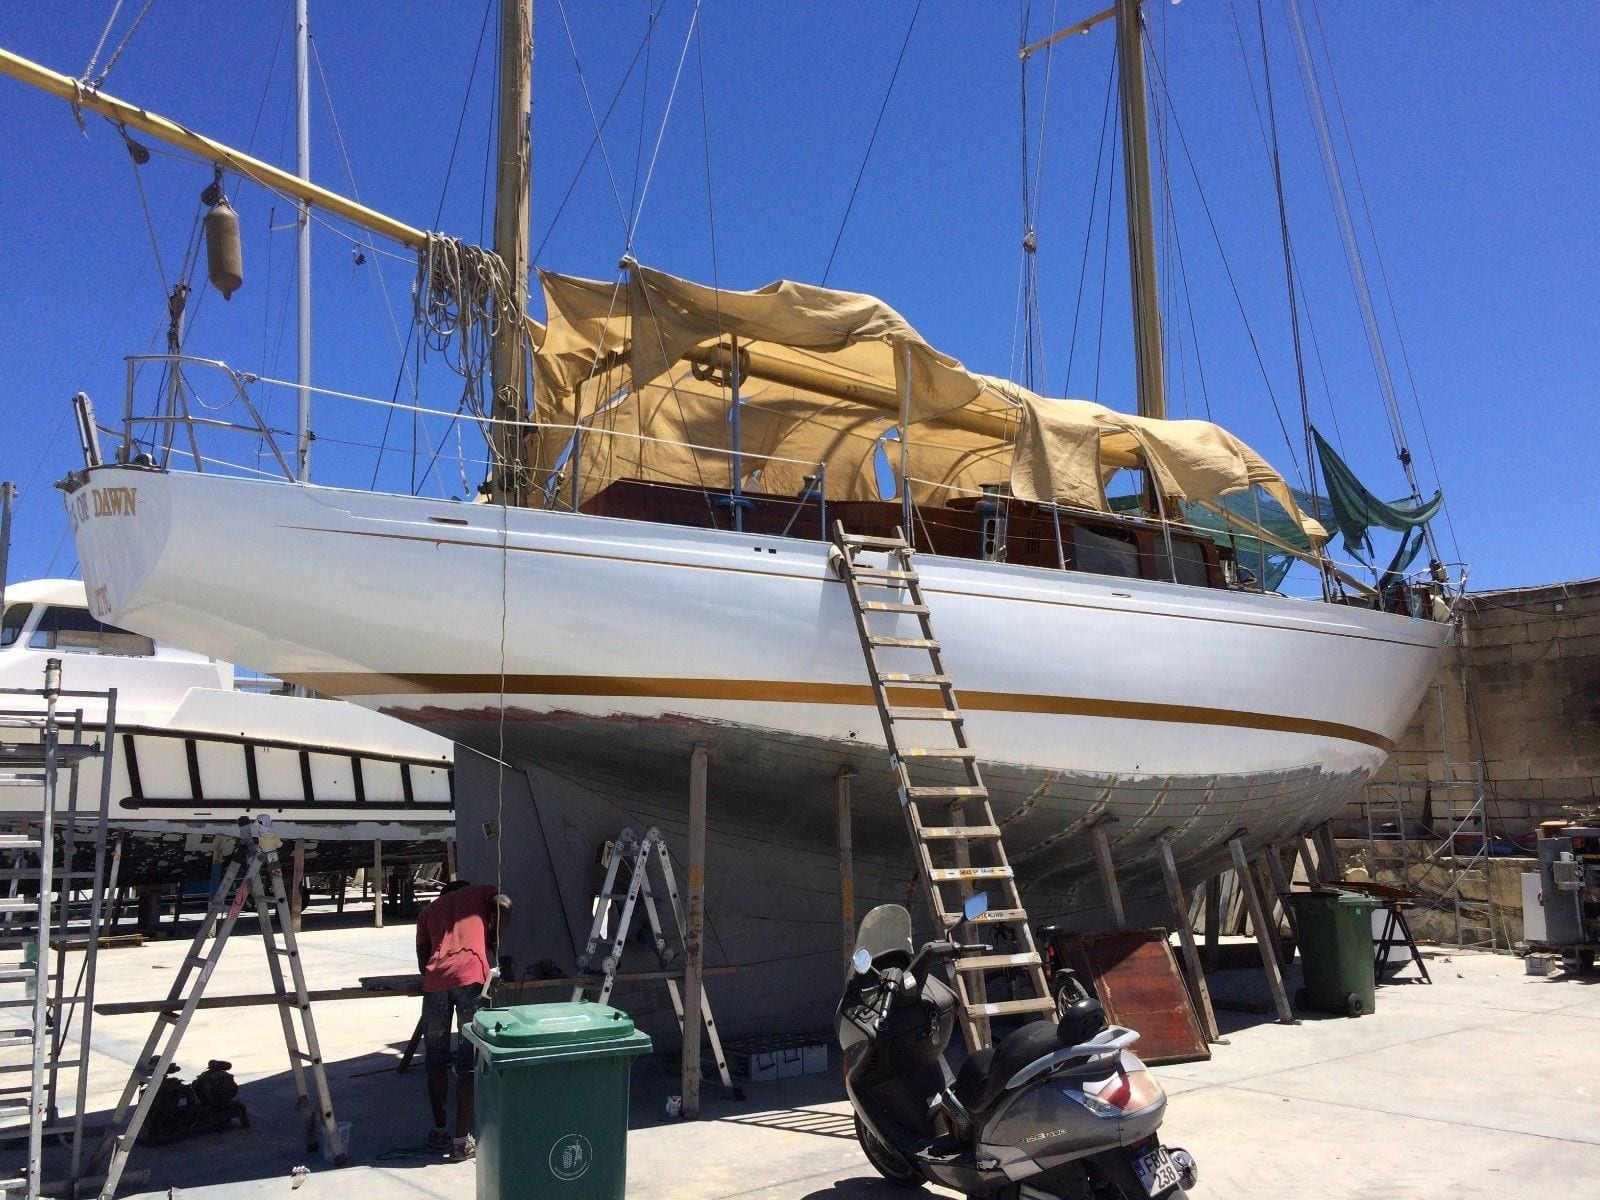 Classic Sailing yacht under £100k -Current Status of the vessel end of 2017